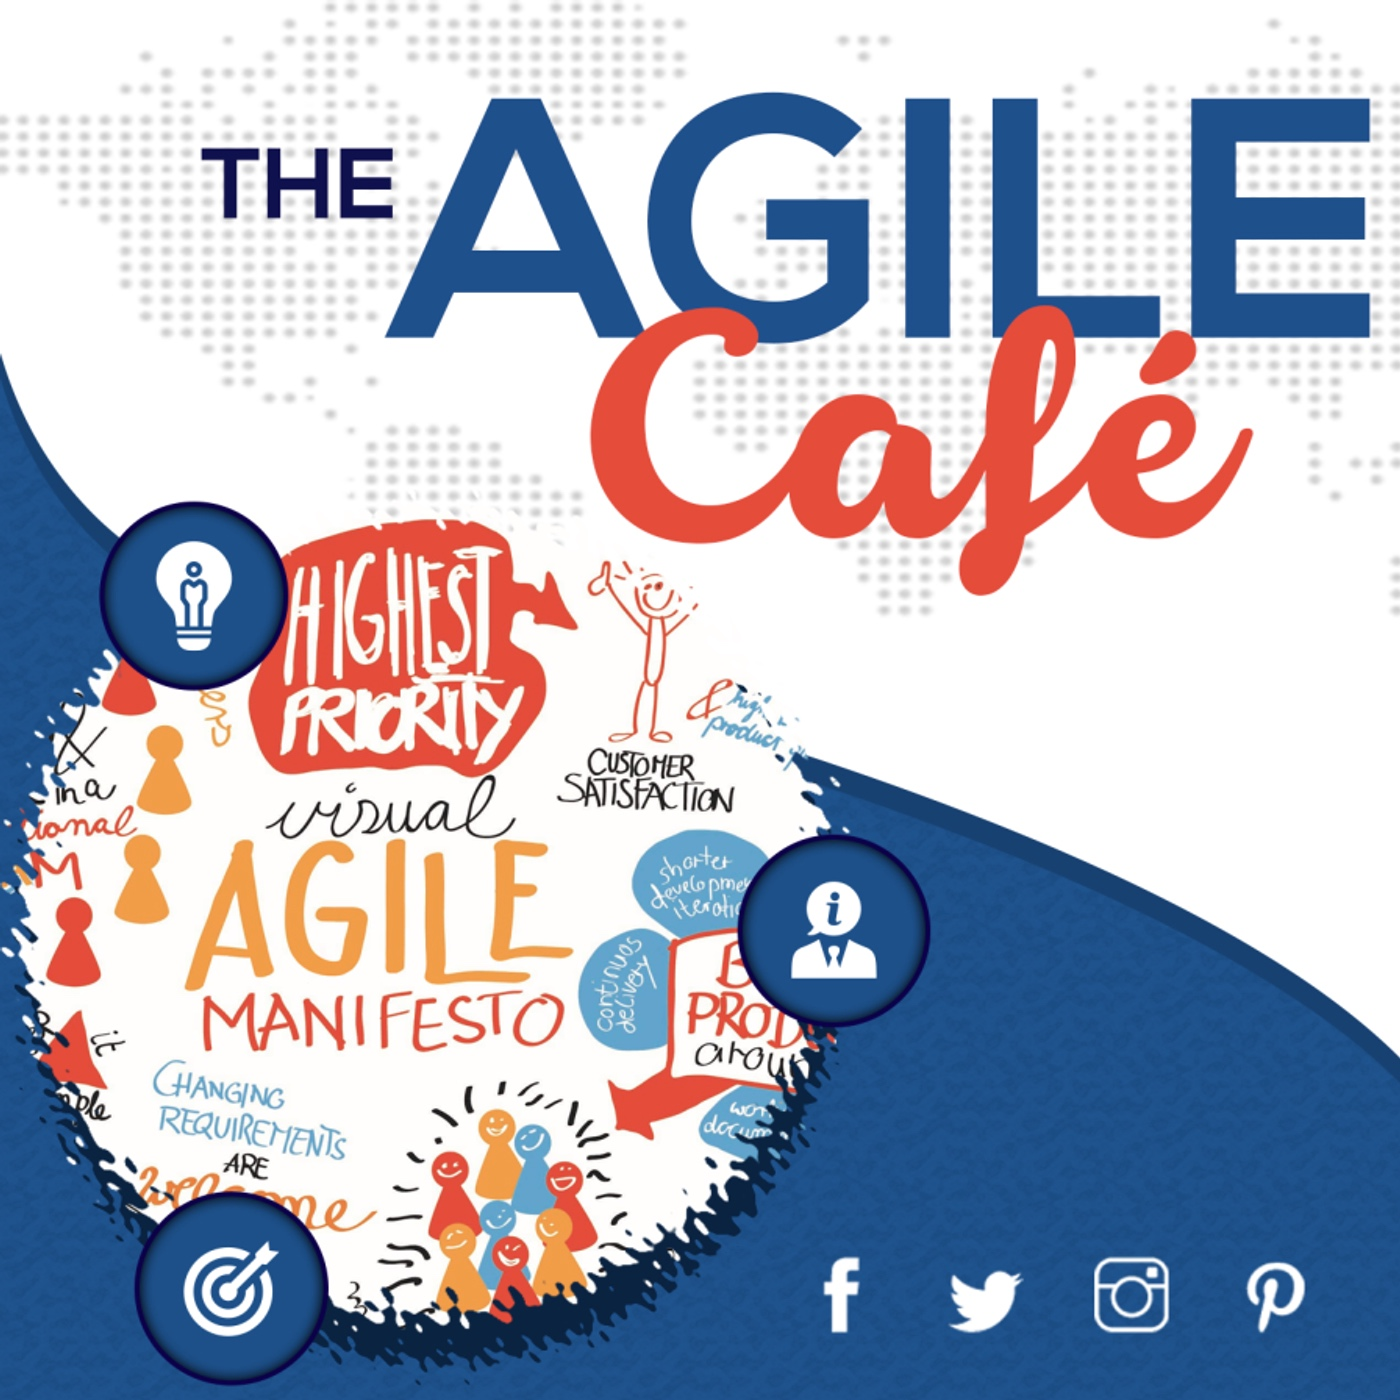 005 Agile Infographic Reports with Ian Carroll